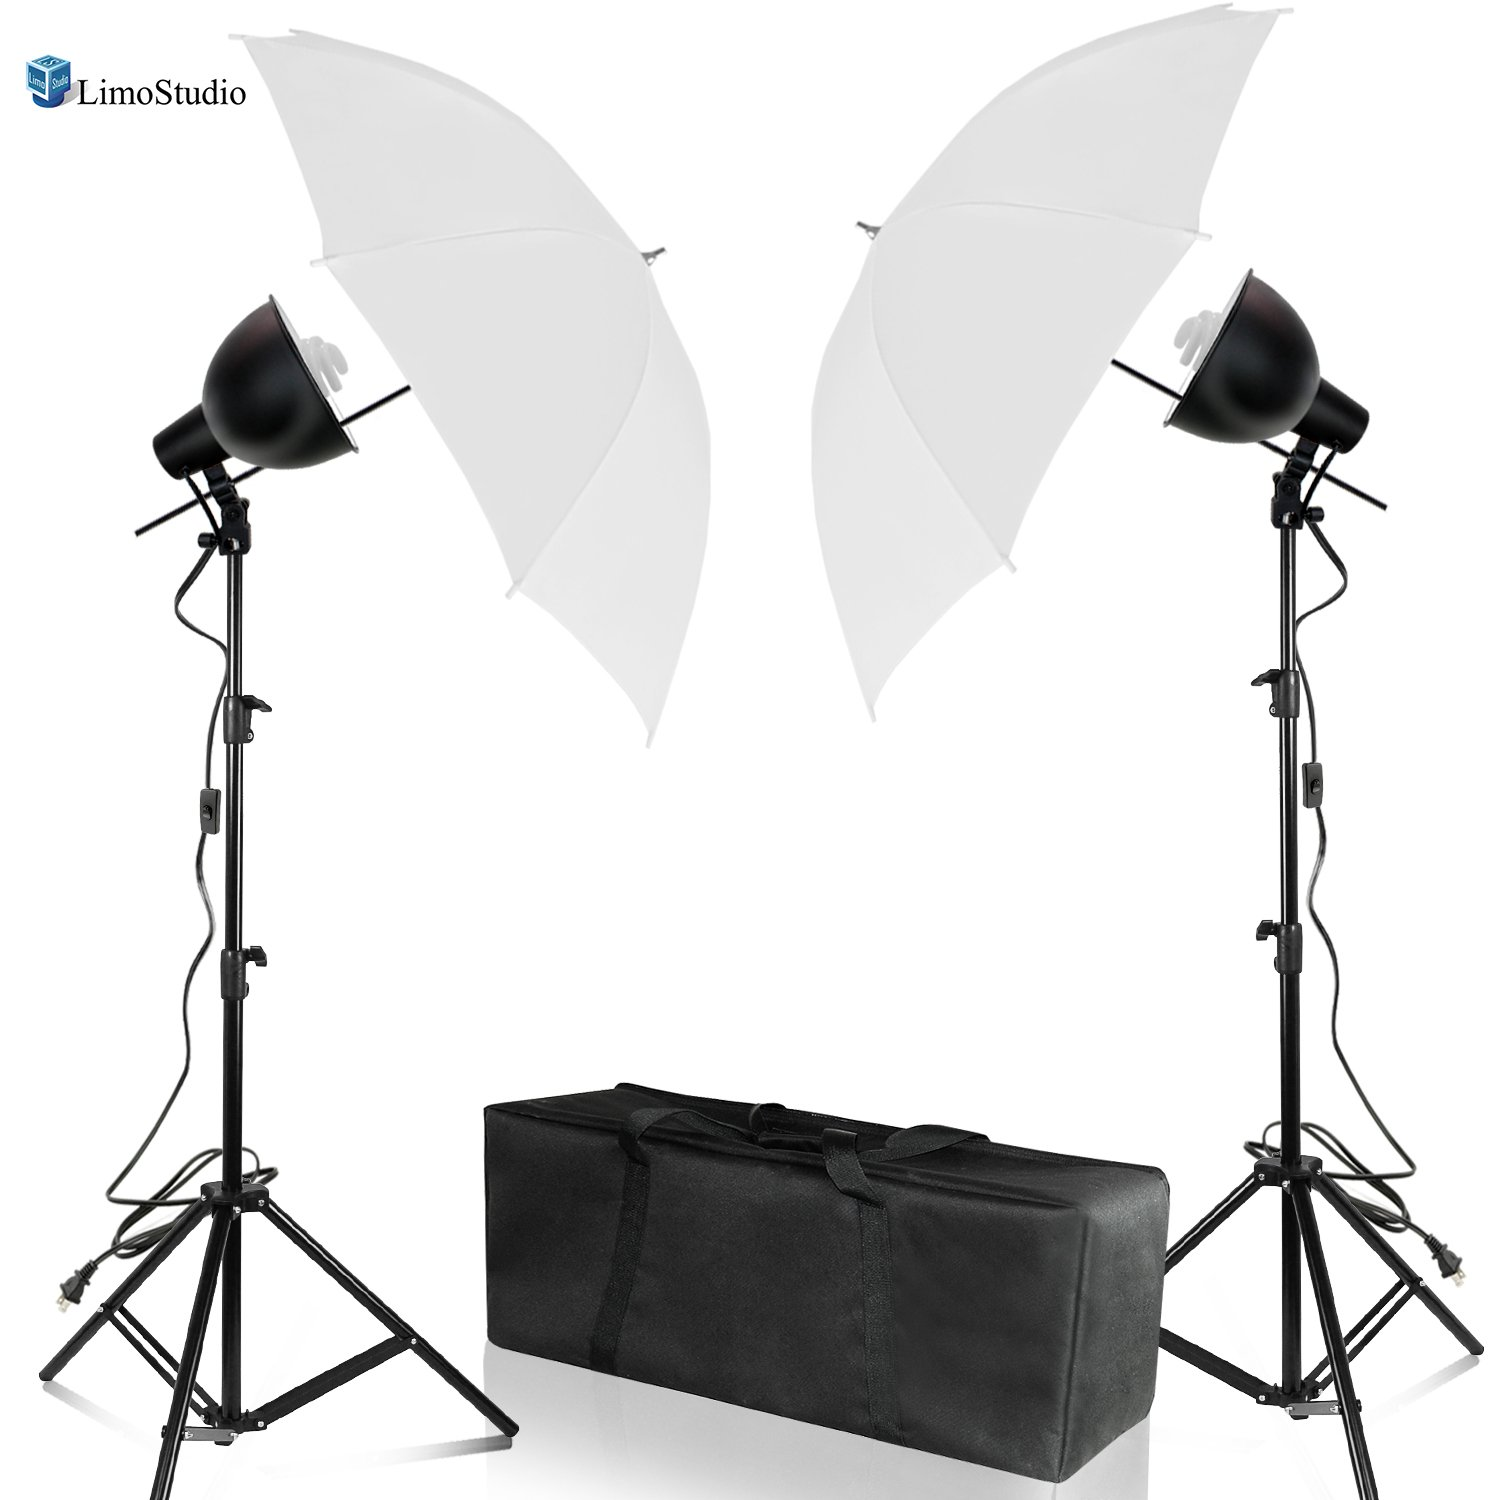 Limostudio Day Light Continuous Lighting Kit/ 7.5'' Reflector Dish with 45 W Light, Light Stand Tripod, 33''White Umbrella and Carry Bag, AGG2572